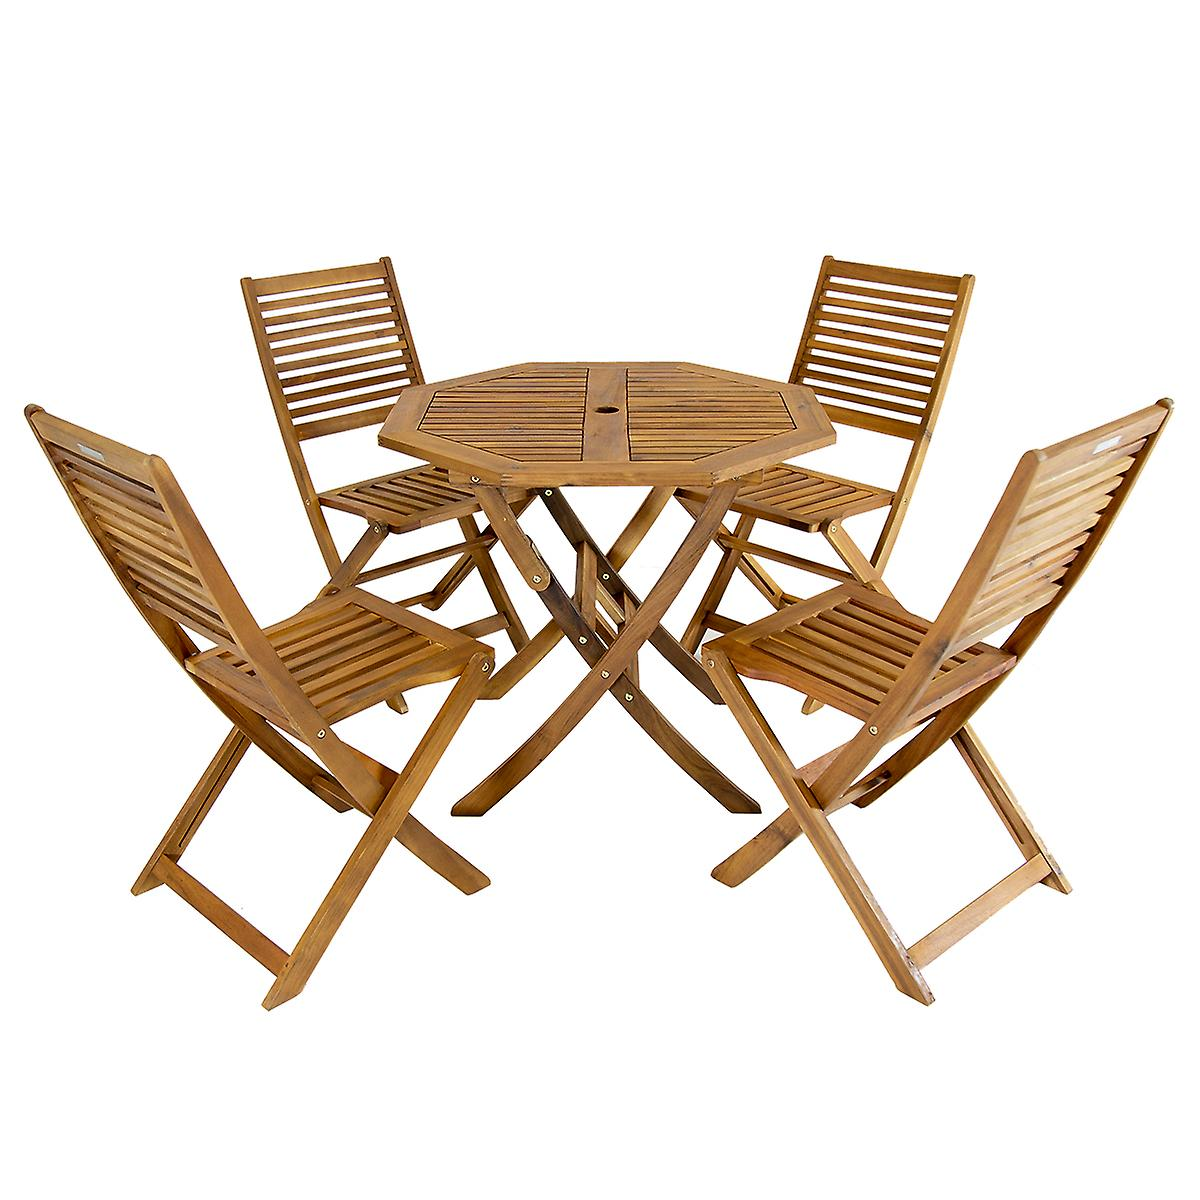 Chairs Charles Fsc Bentley Acacia Tableamp; Wooden Octagonal 5pc Set BdCxoe